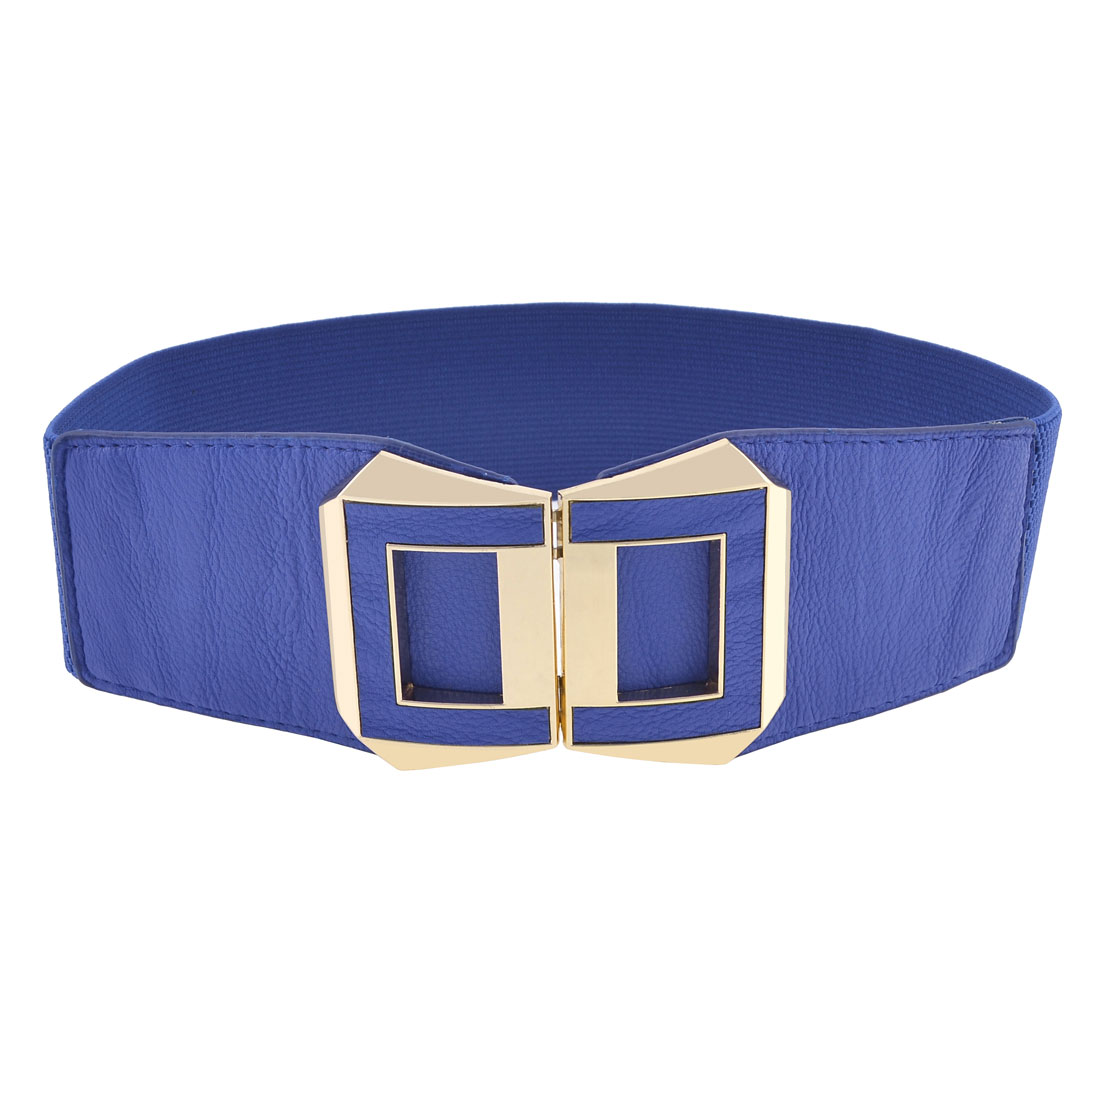 Woman Blue Double D Shaped Interlock Buckle Elastic Band Cinch Waist Belt